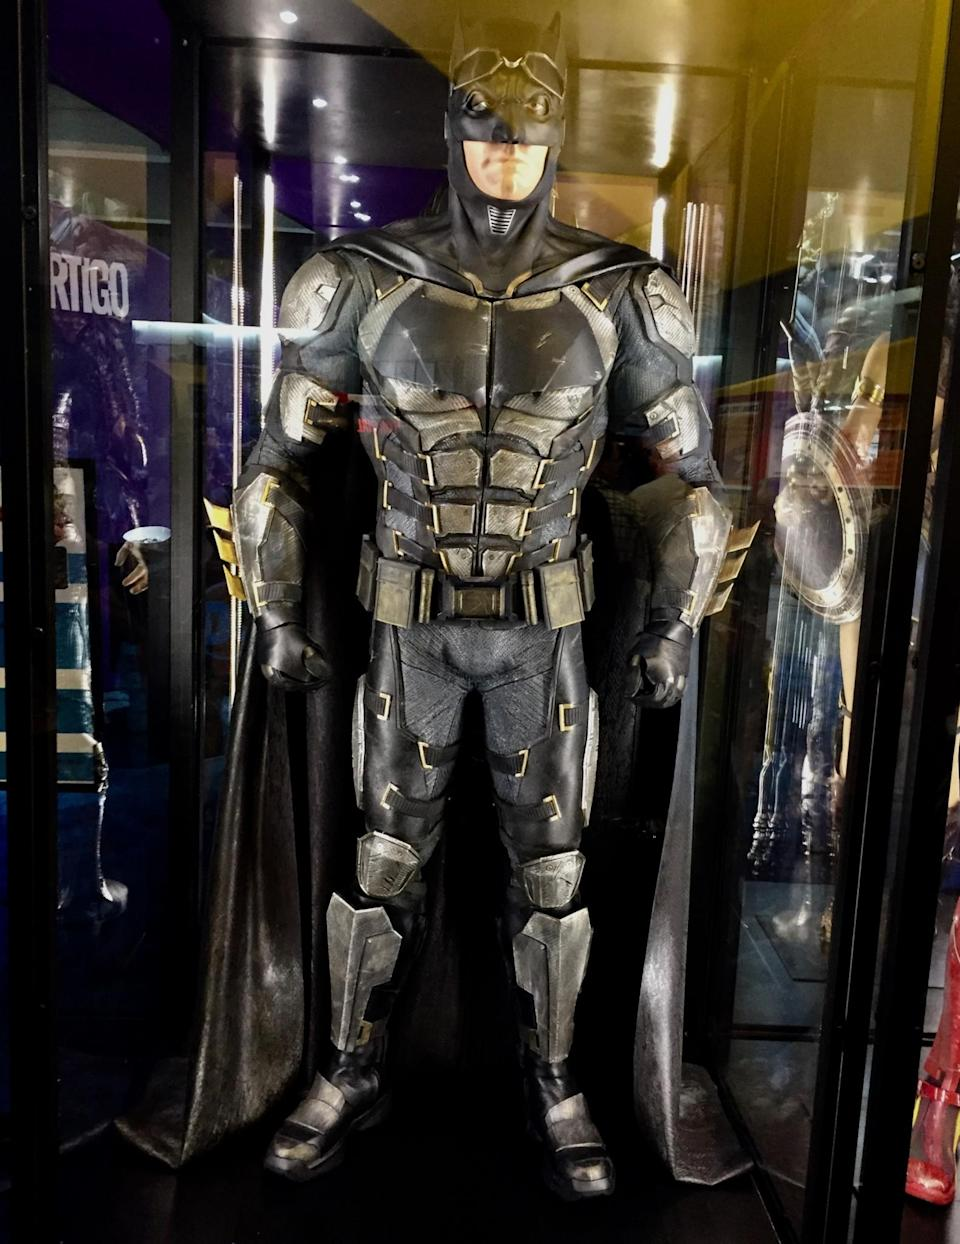 <p>Ben Affleck's Bruce Wayne has made some modifications to his Caped Crusader costume. (Photo: Marcus Errico/Yahoo Movies) </p>